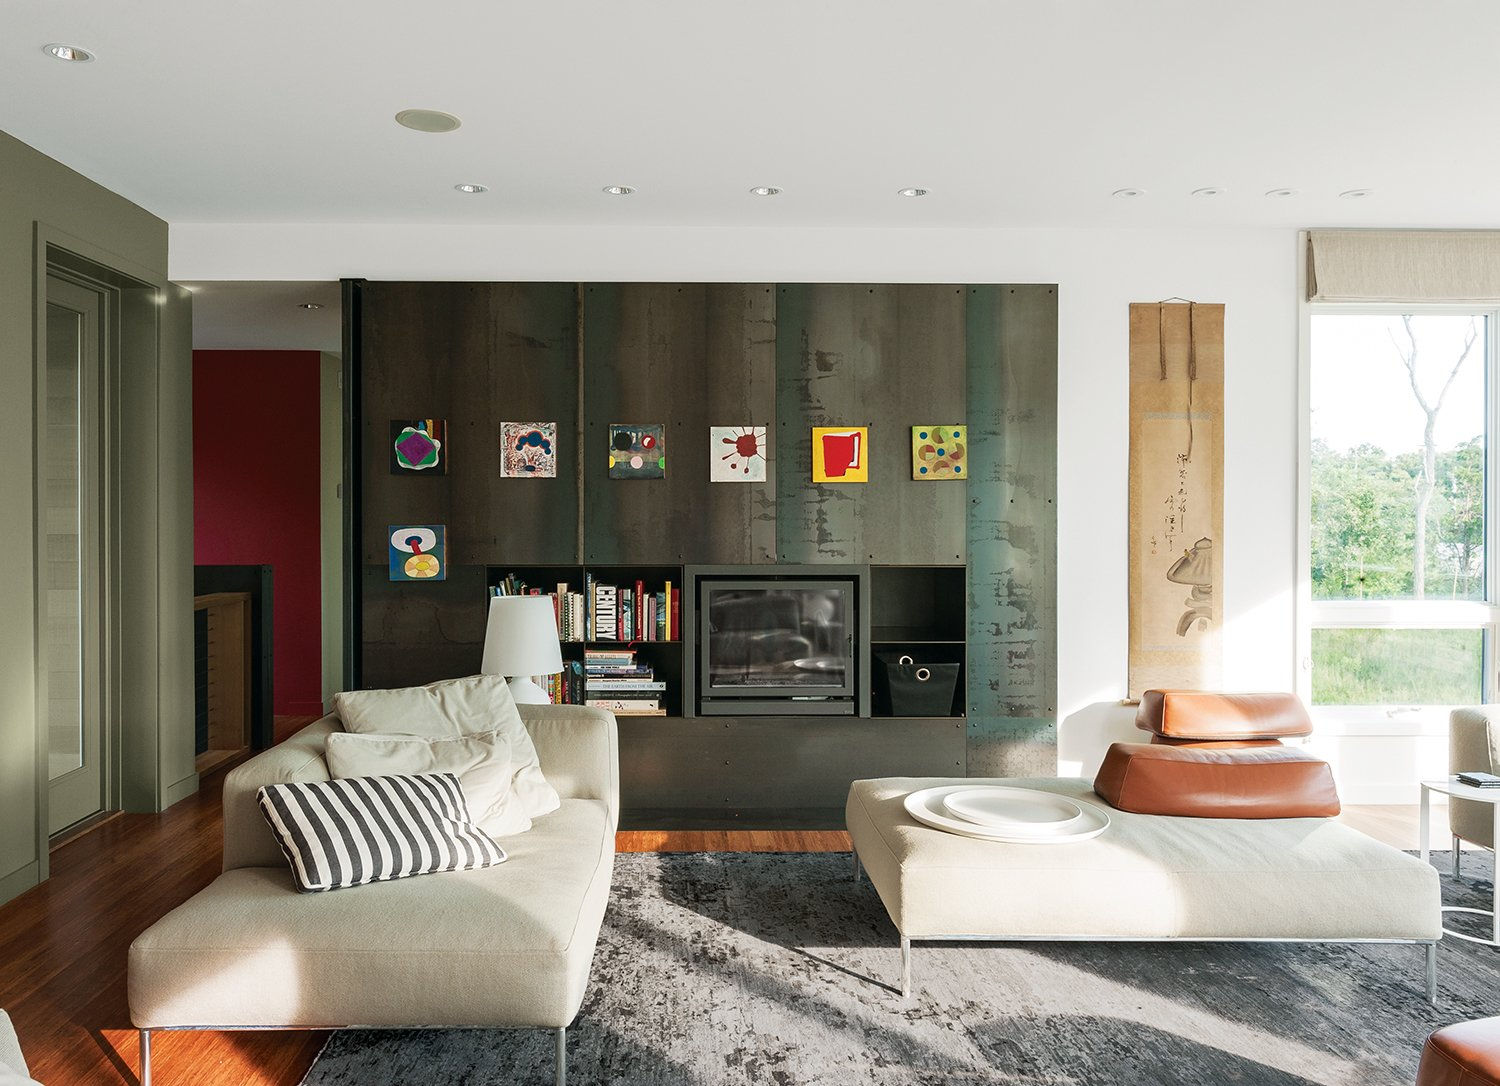 The fireplace wall, a Resolution: 4 signature, is made of 14-gauge hot-rolled steel panels with storage components in one-eighth welded steel. On one side is a pivoting privacy panel that allows the guest wing to be closed off. Art attaches to the metal with magnets. Tagged: Living Room, Medium Hardwood Floor, Sofa, Ceiling Lighting, and Recessed Lighting.  Photo 5 of 11 in An Unconventional Prefab on Fishers Island